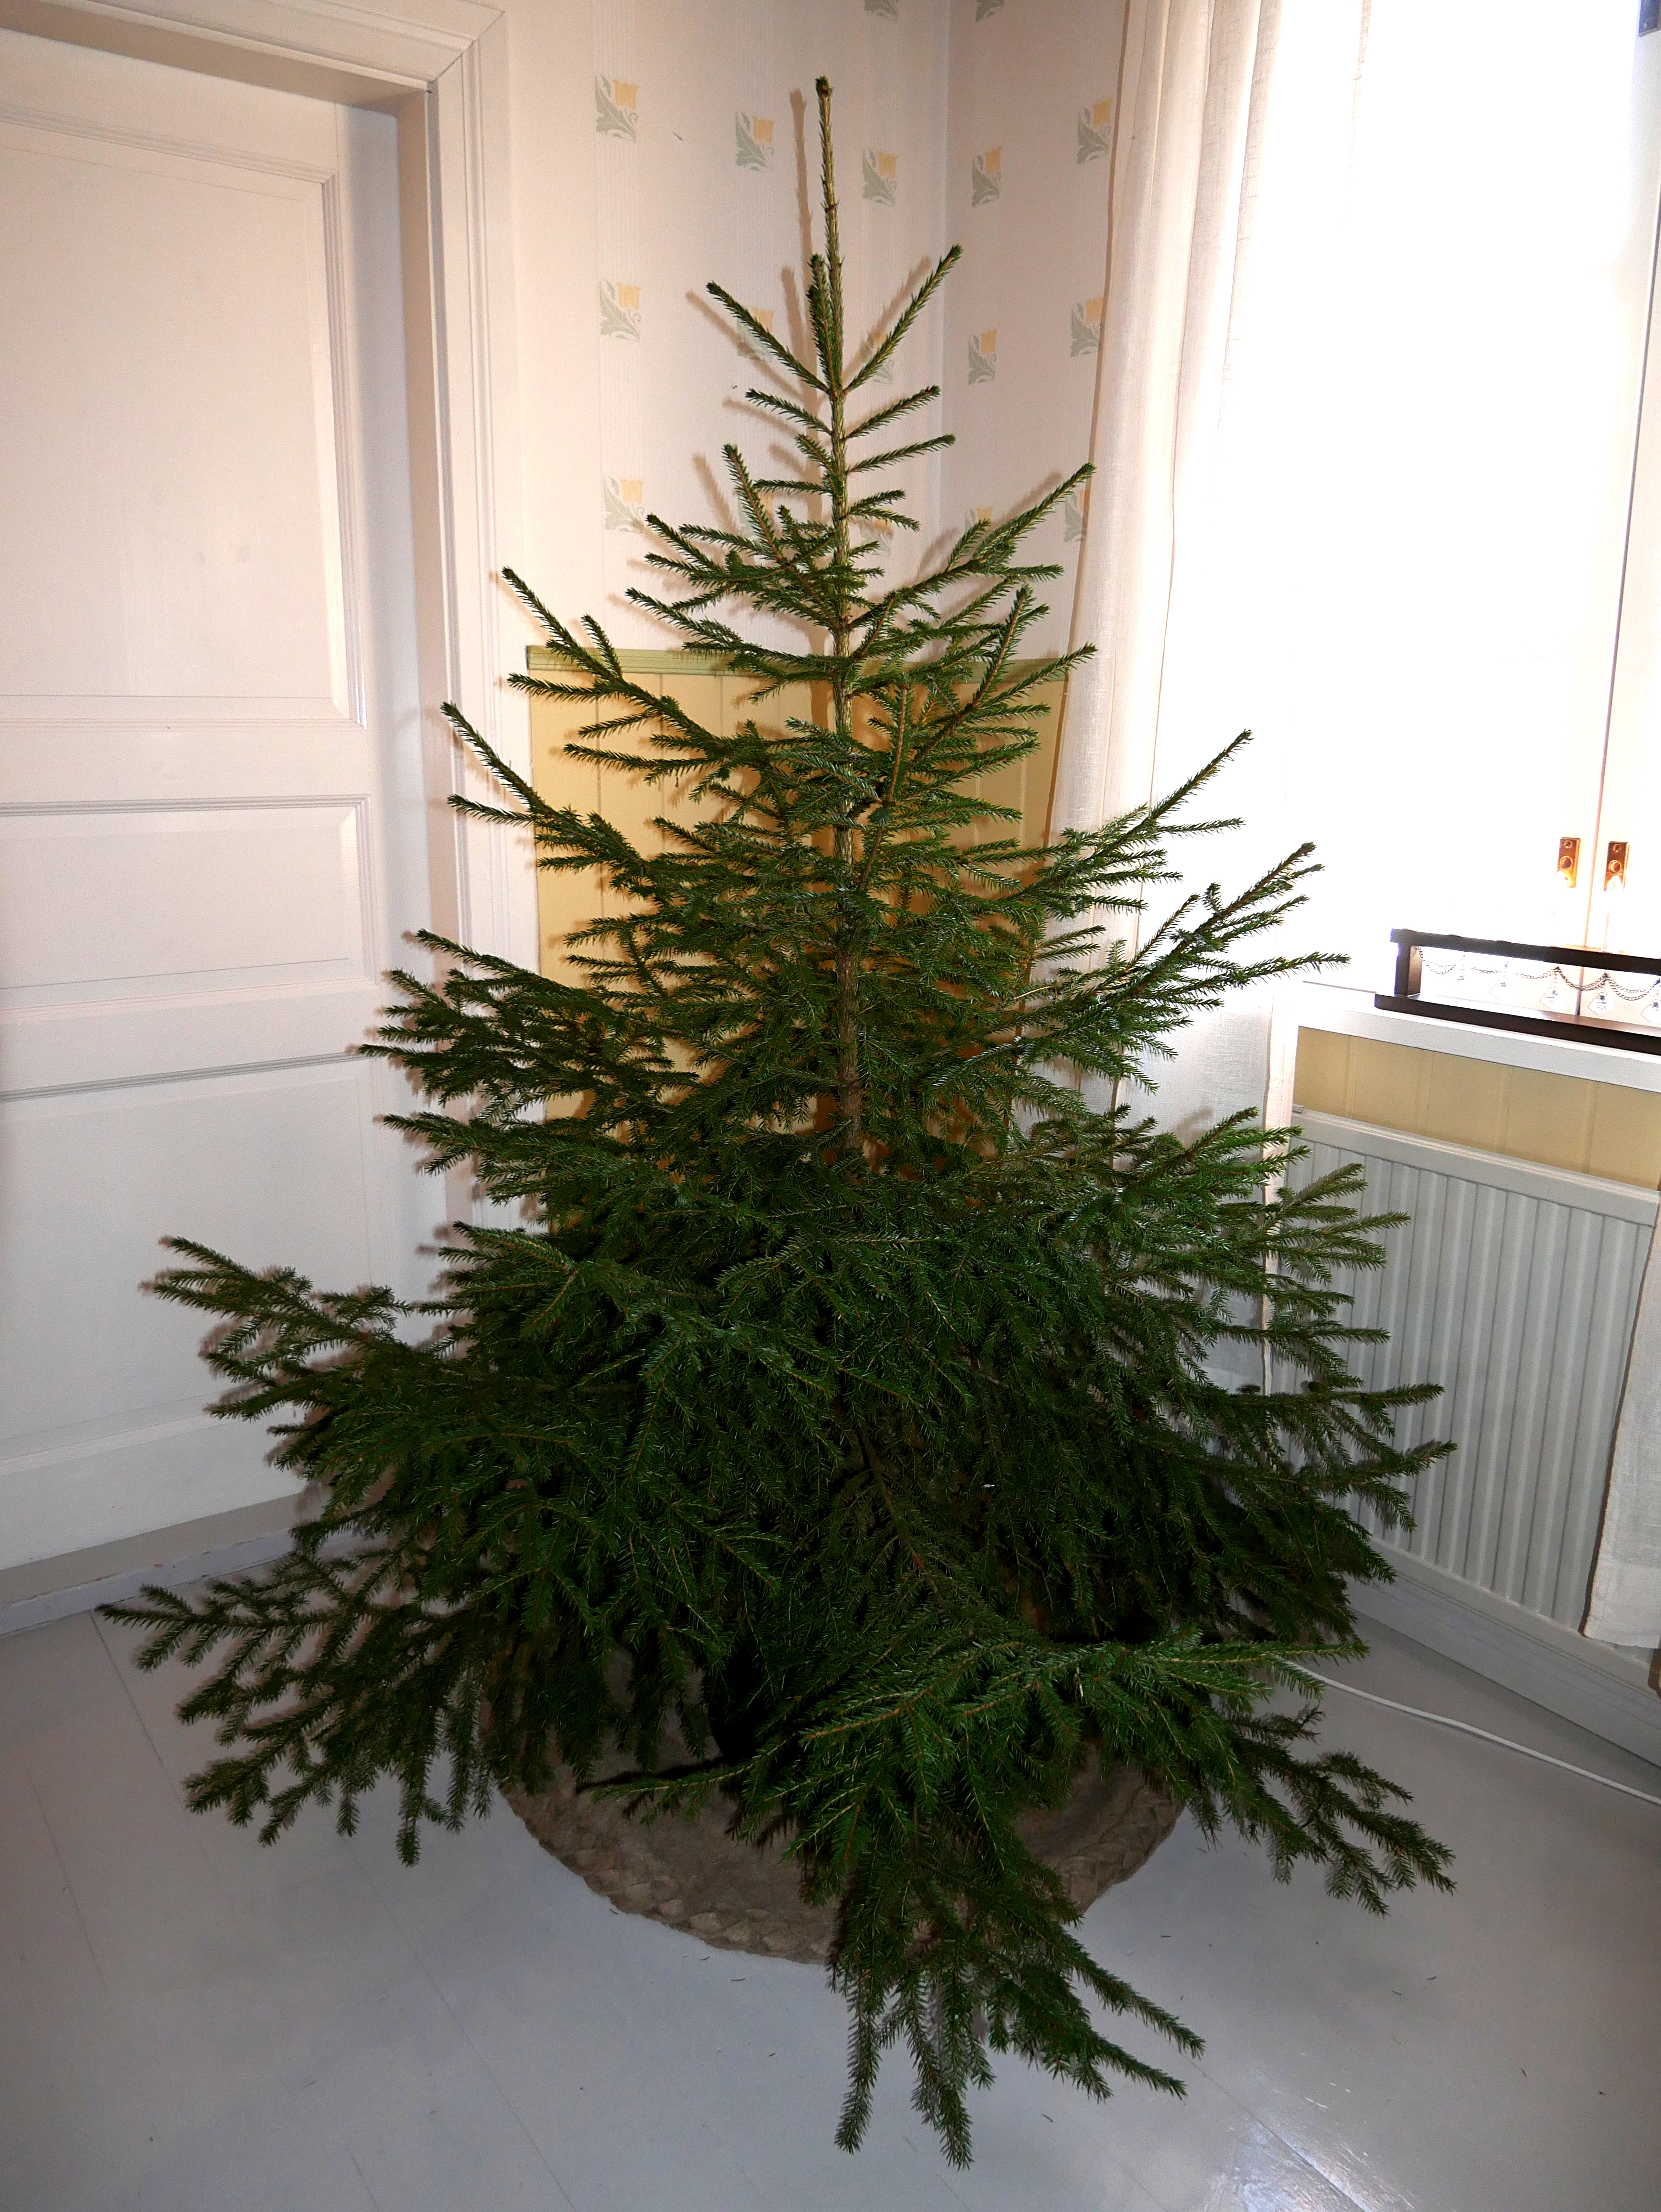 Decorate Christmas Tree Without Ornaments file:christmas tree without ornaments - wikimedia commons